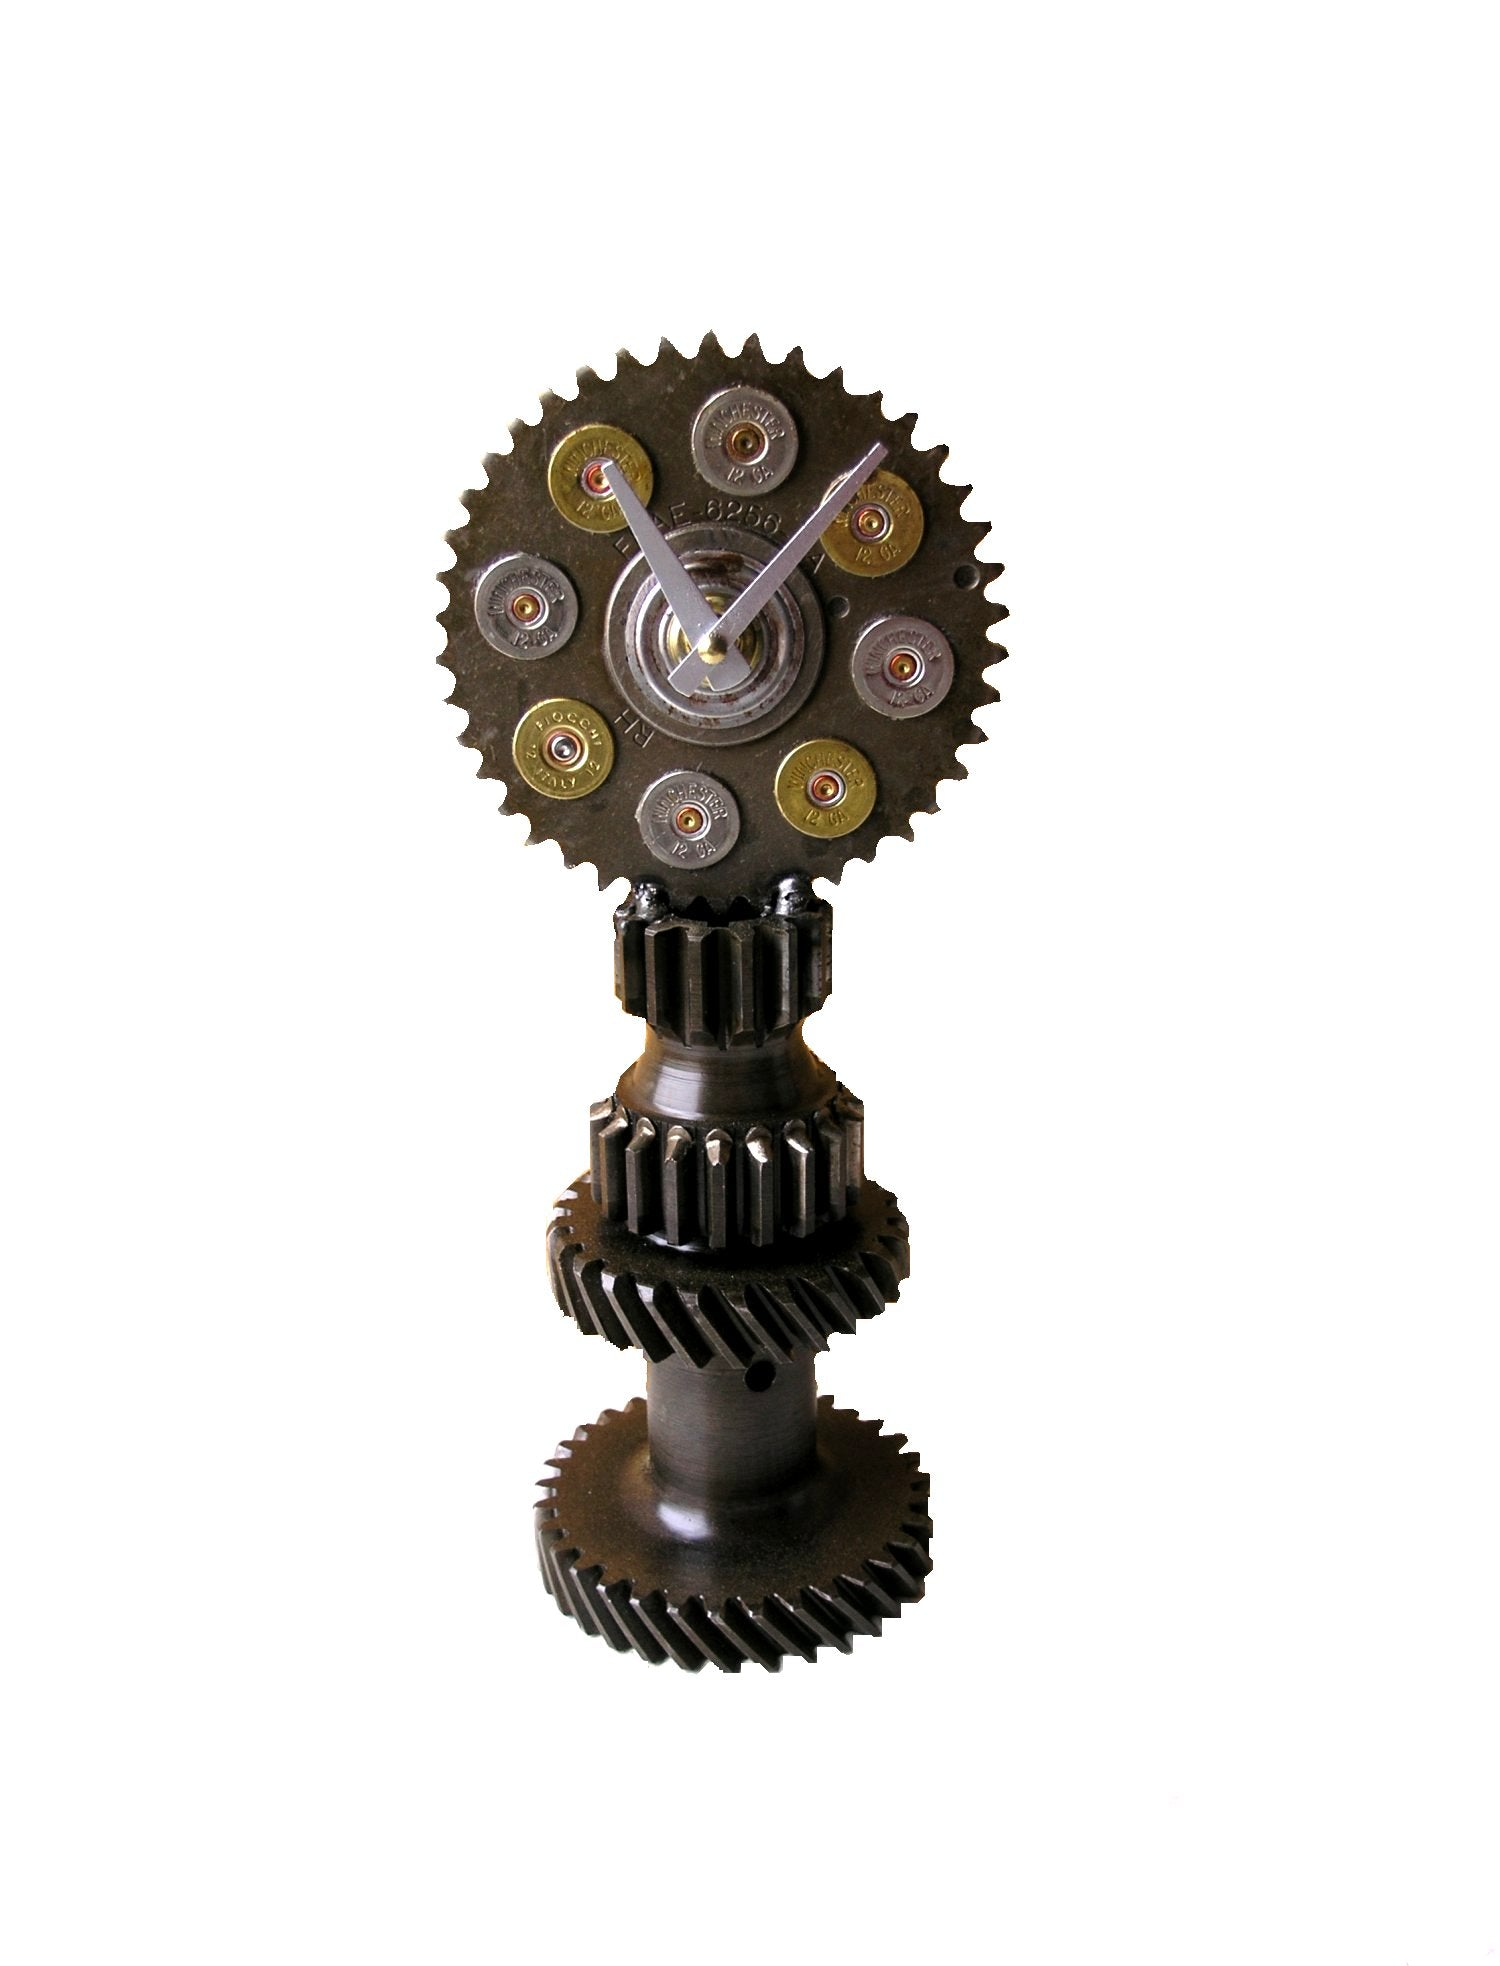 Steampunk Gear Desk Clock - PaulaArt